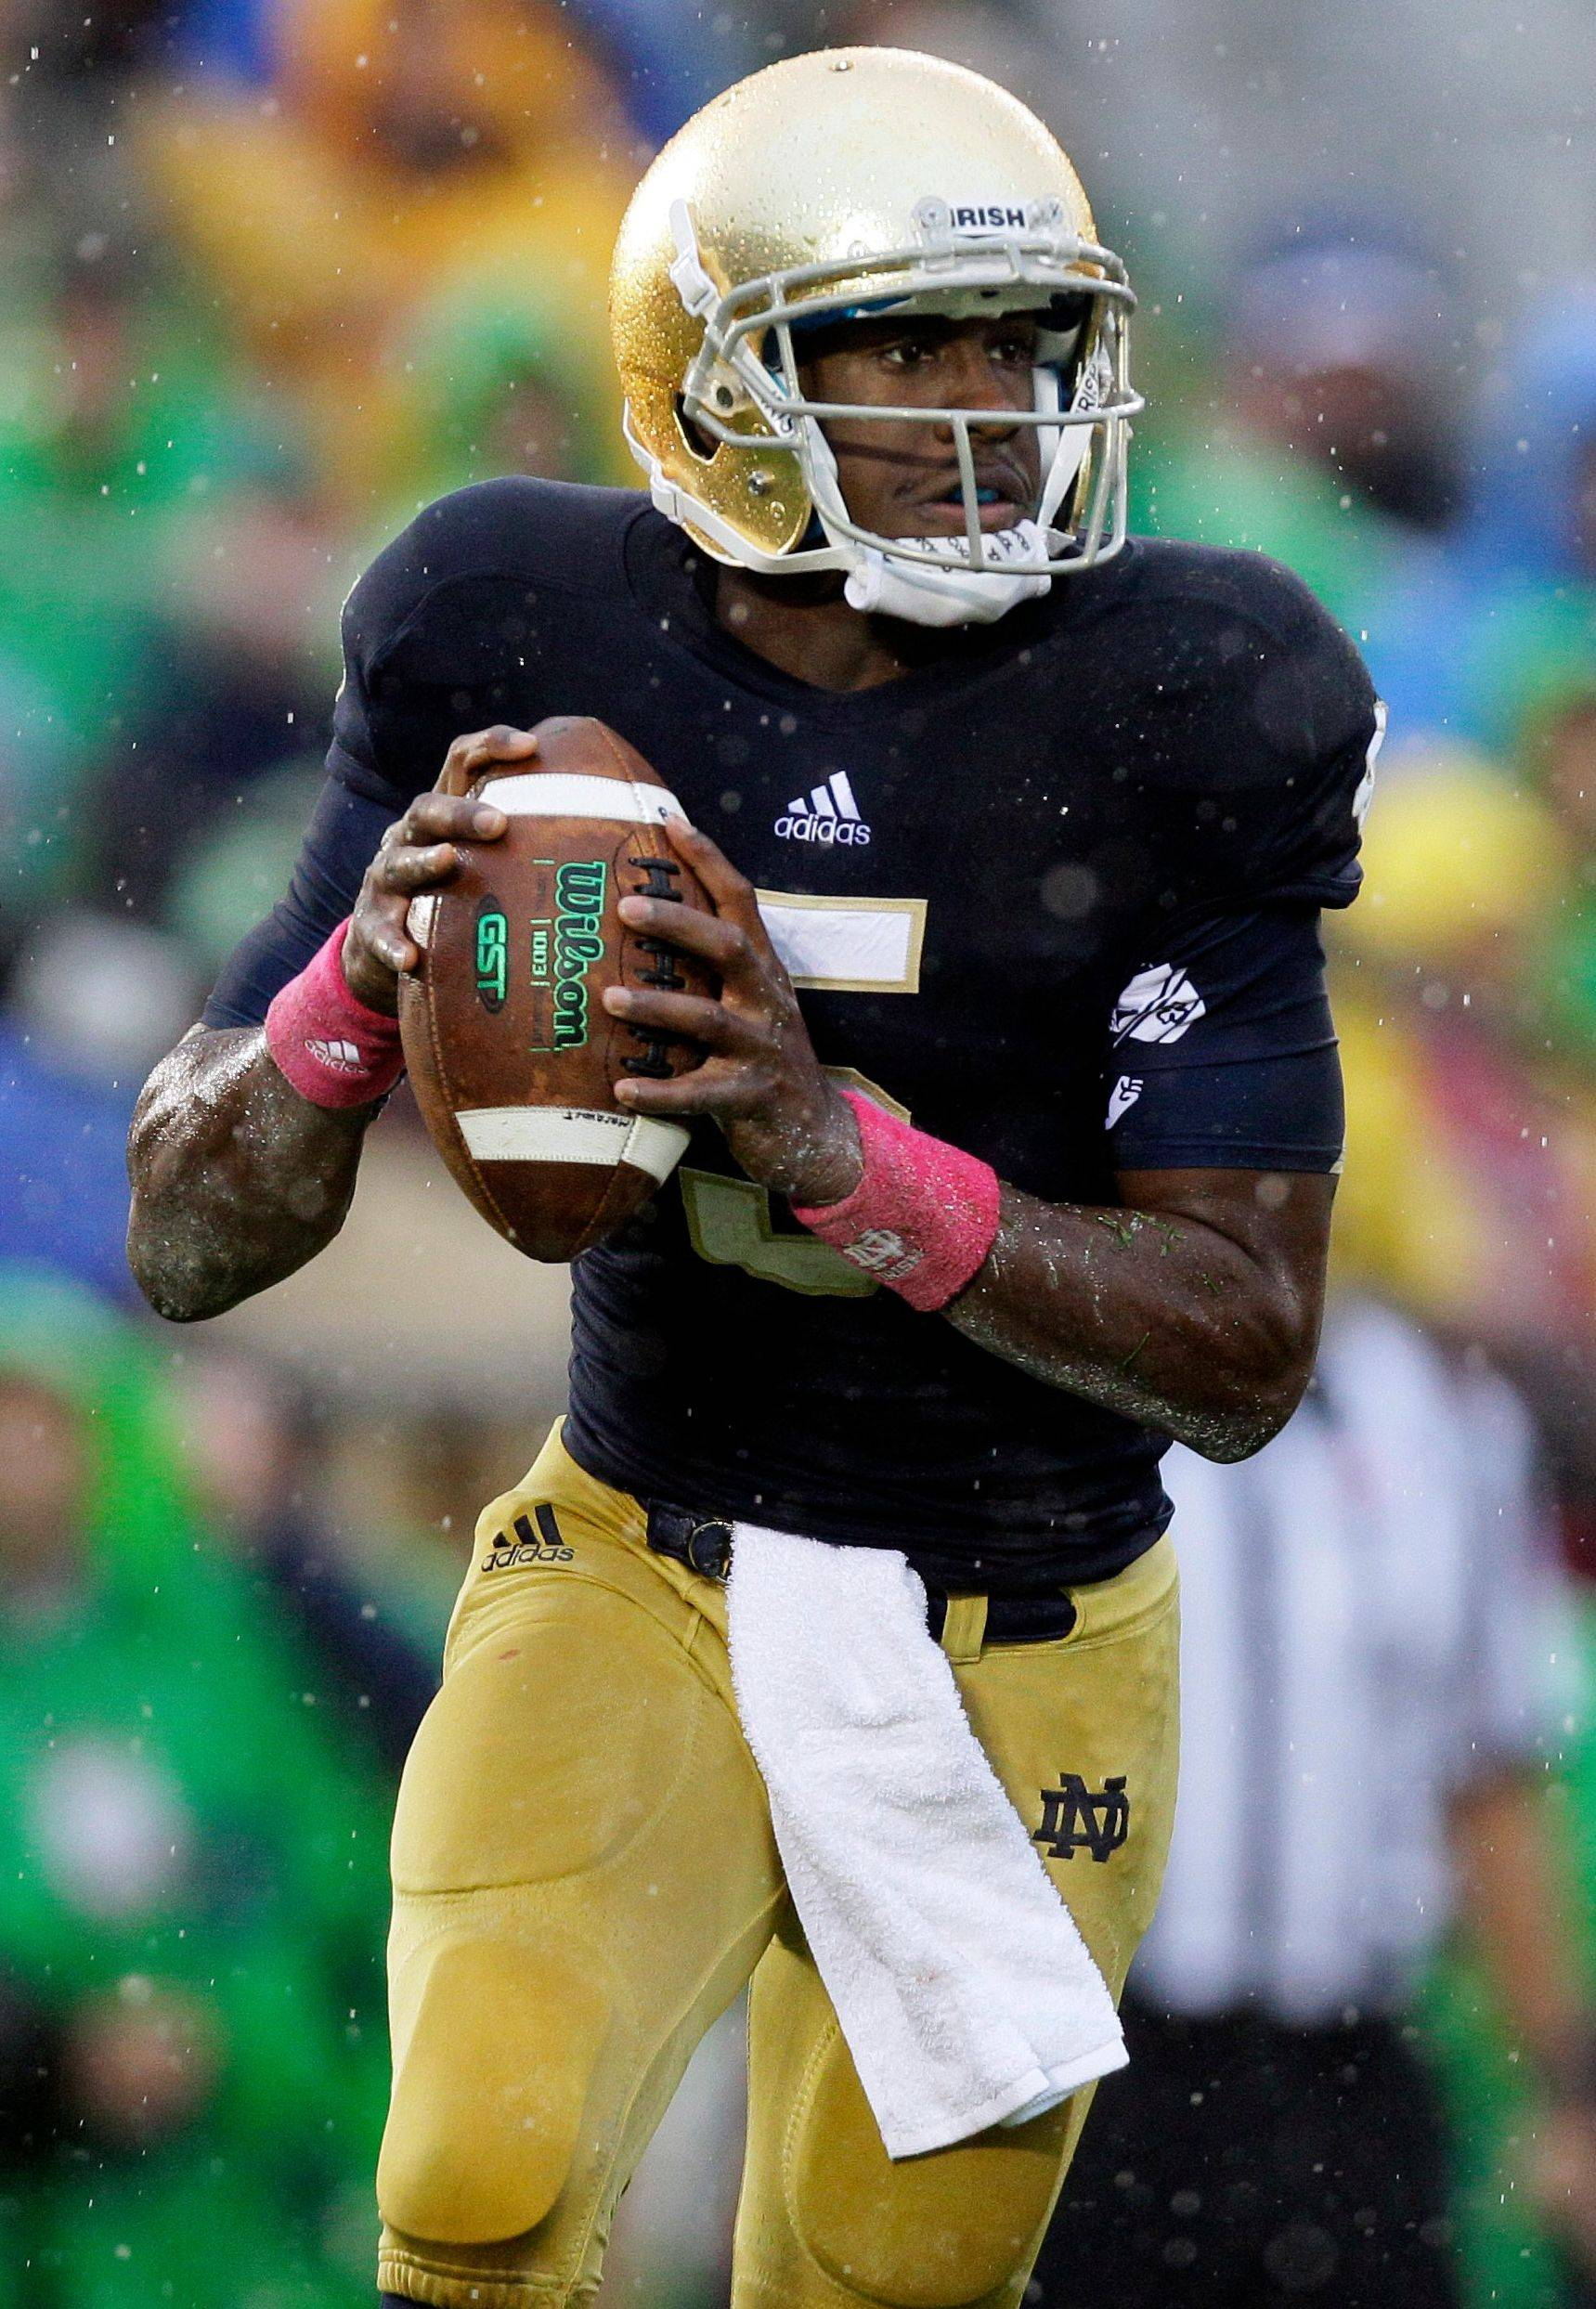 Notre Dame quarterback Everett Golson rolls out to pass during the first half of an NCAA college football game against Stanford in South Bend, Ind., Saturday.